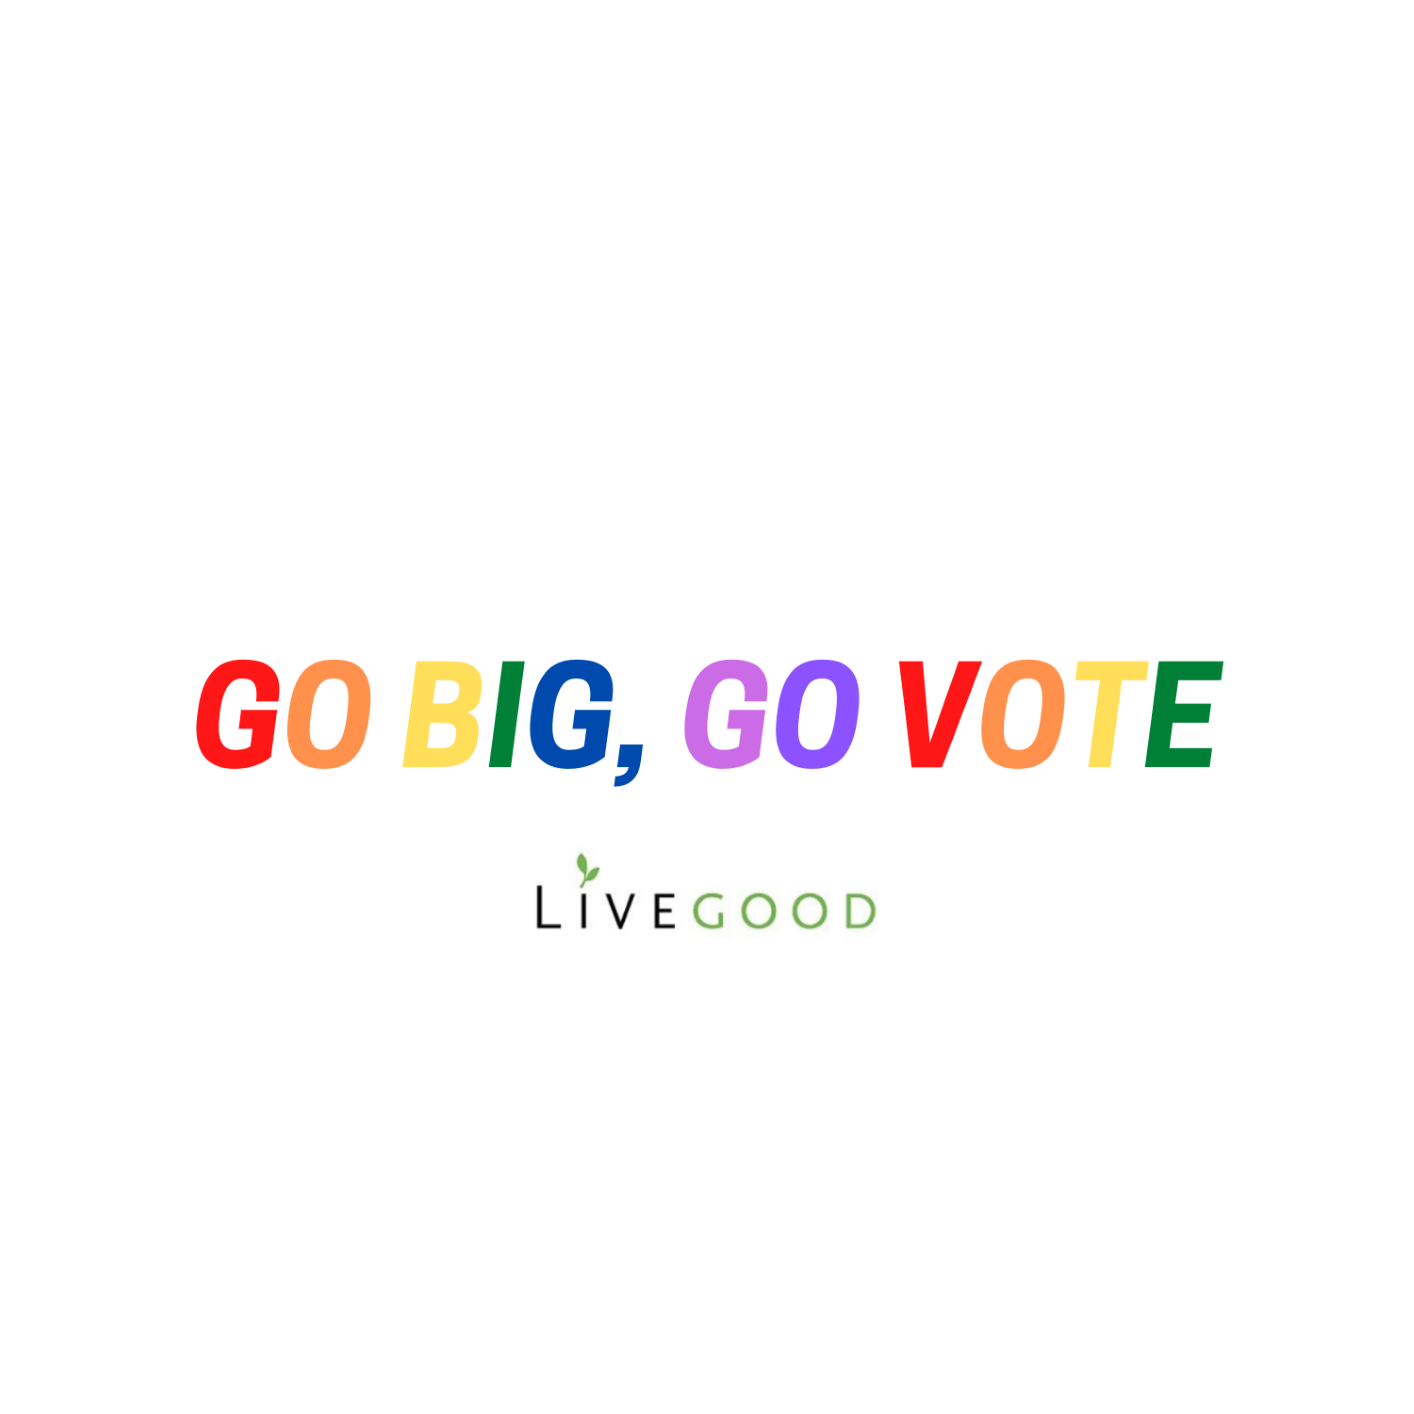 Live Good Face Mask - Go Big, Go Vote